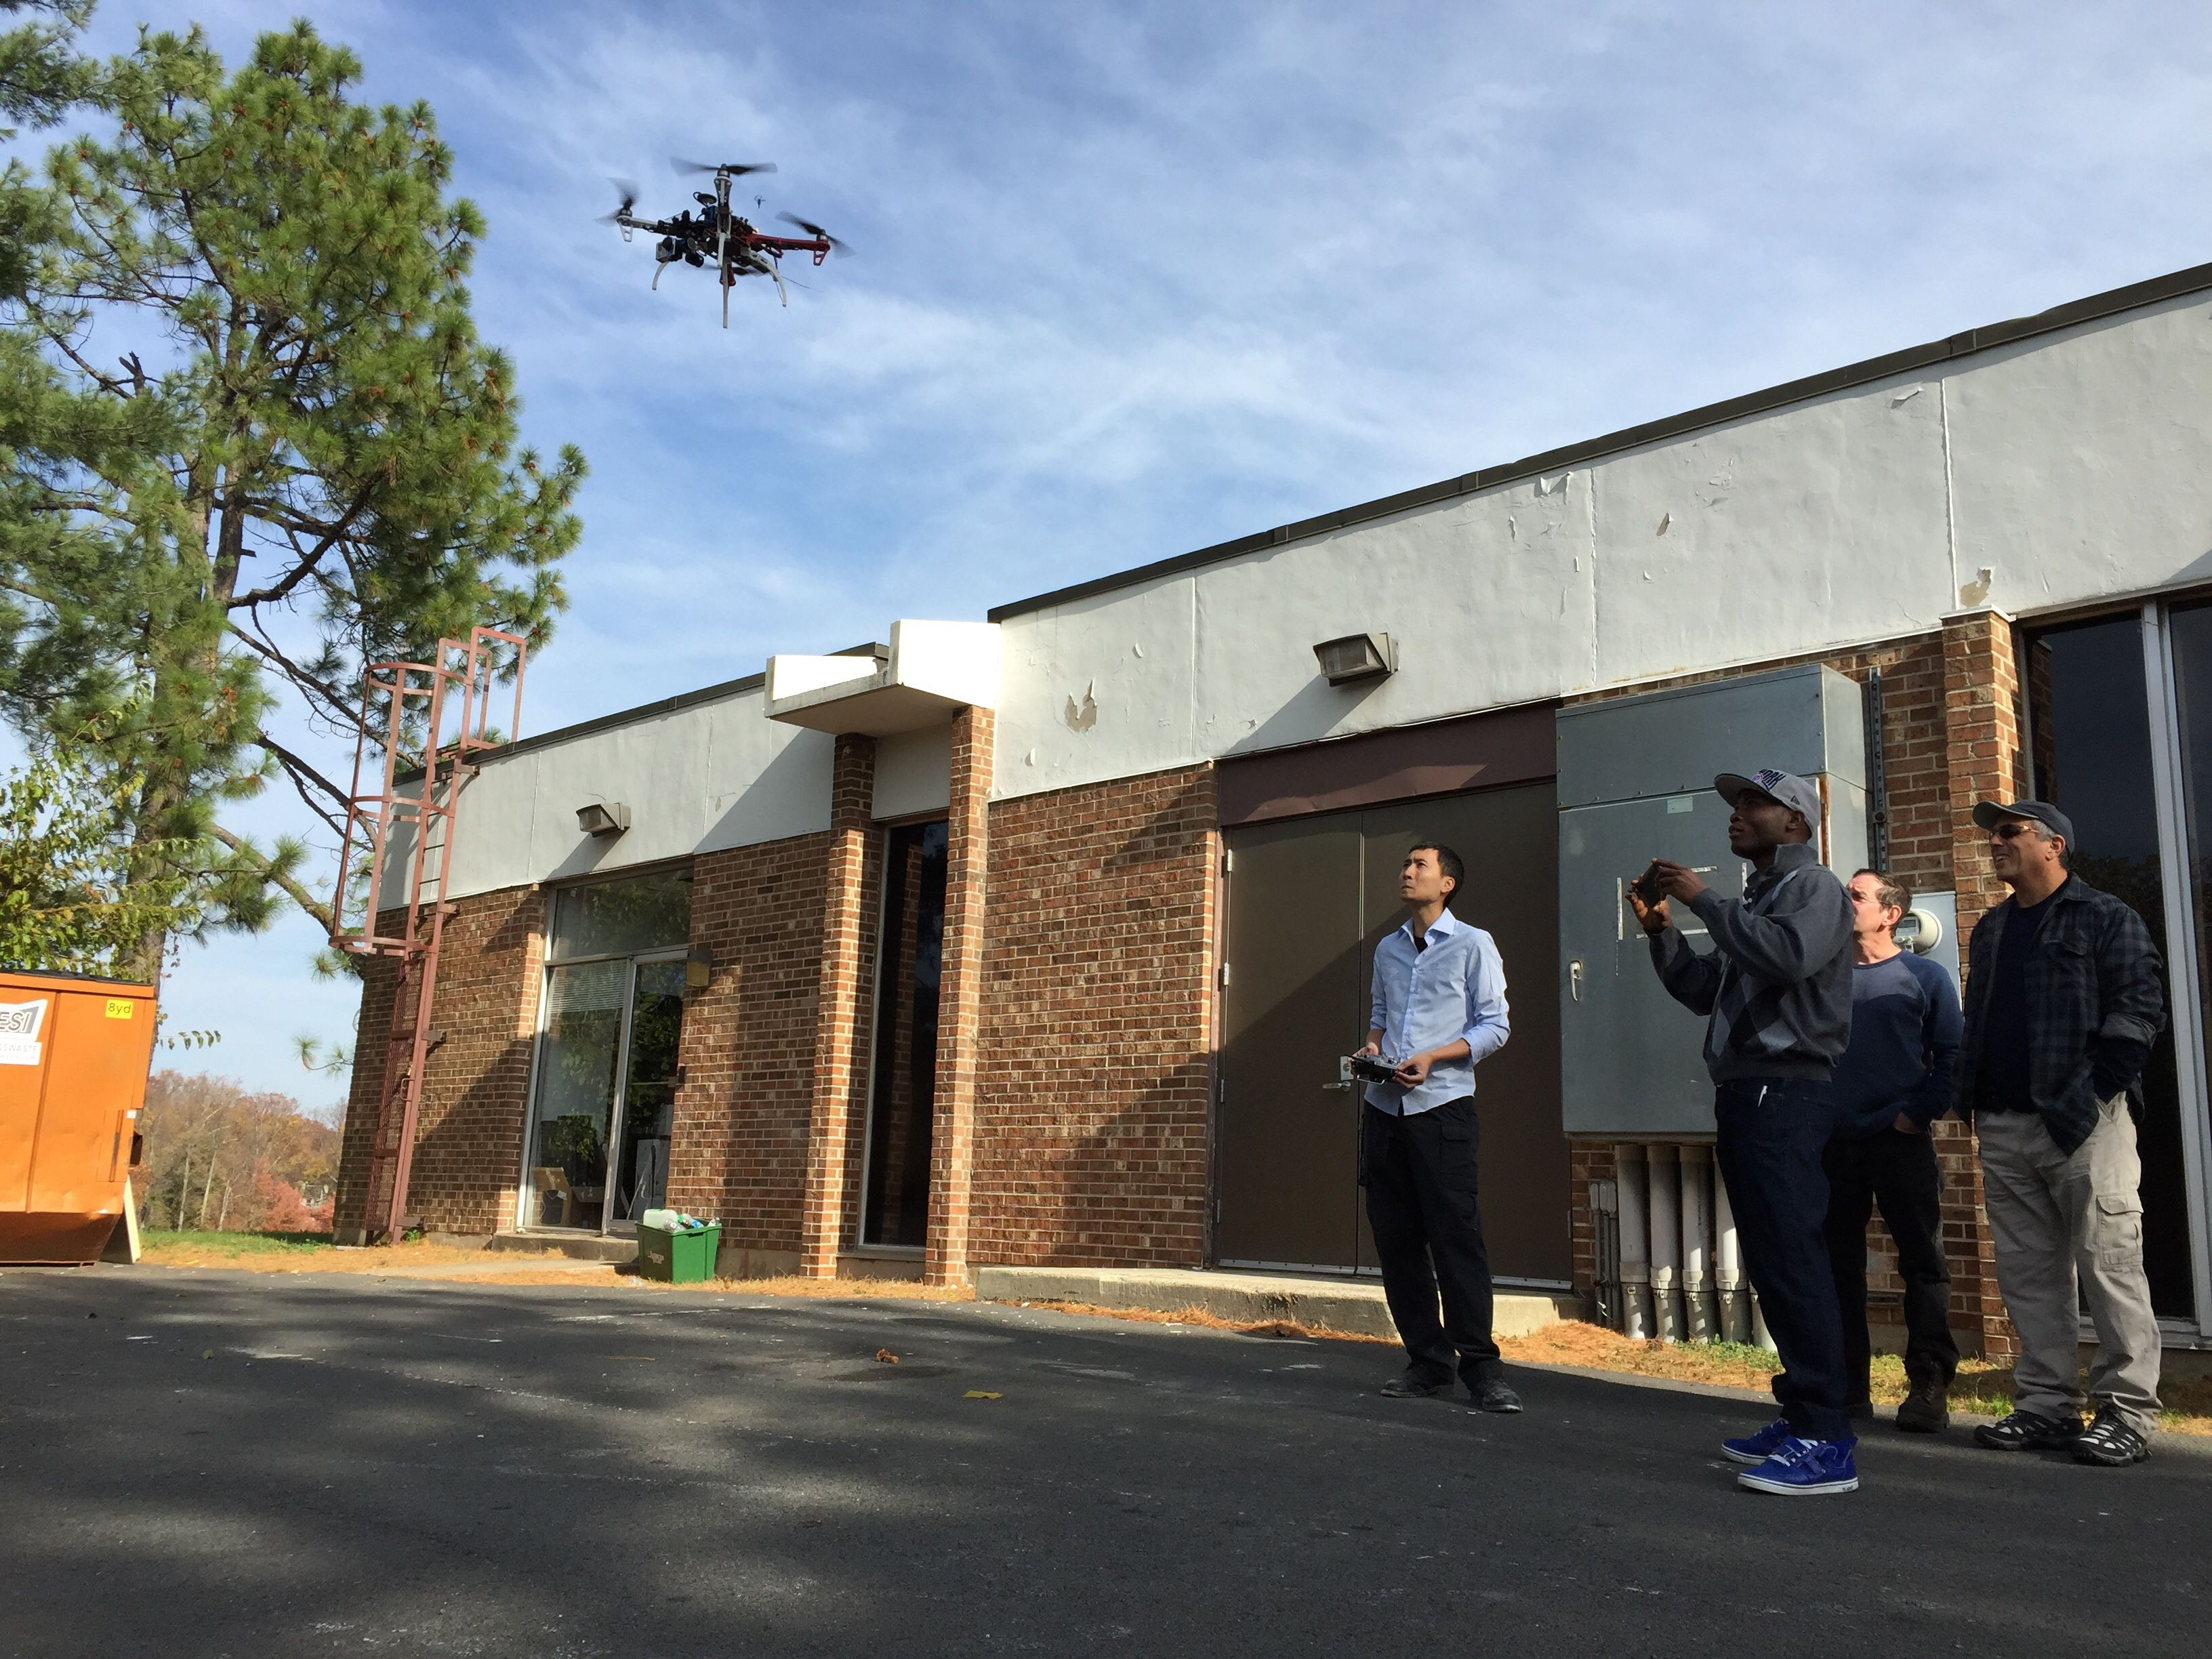 DC Area Drone User Group